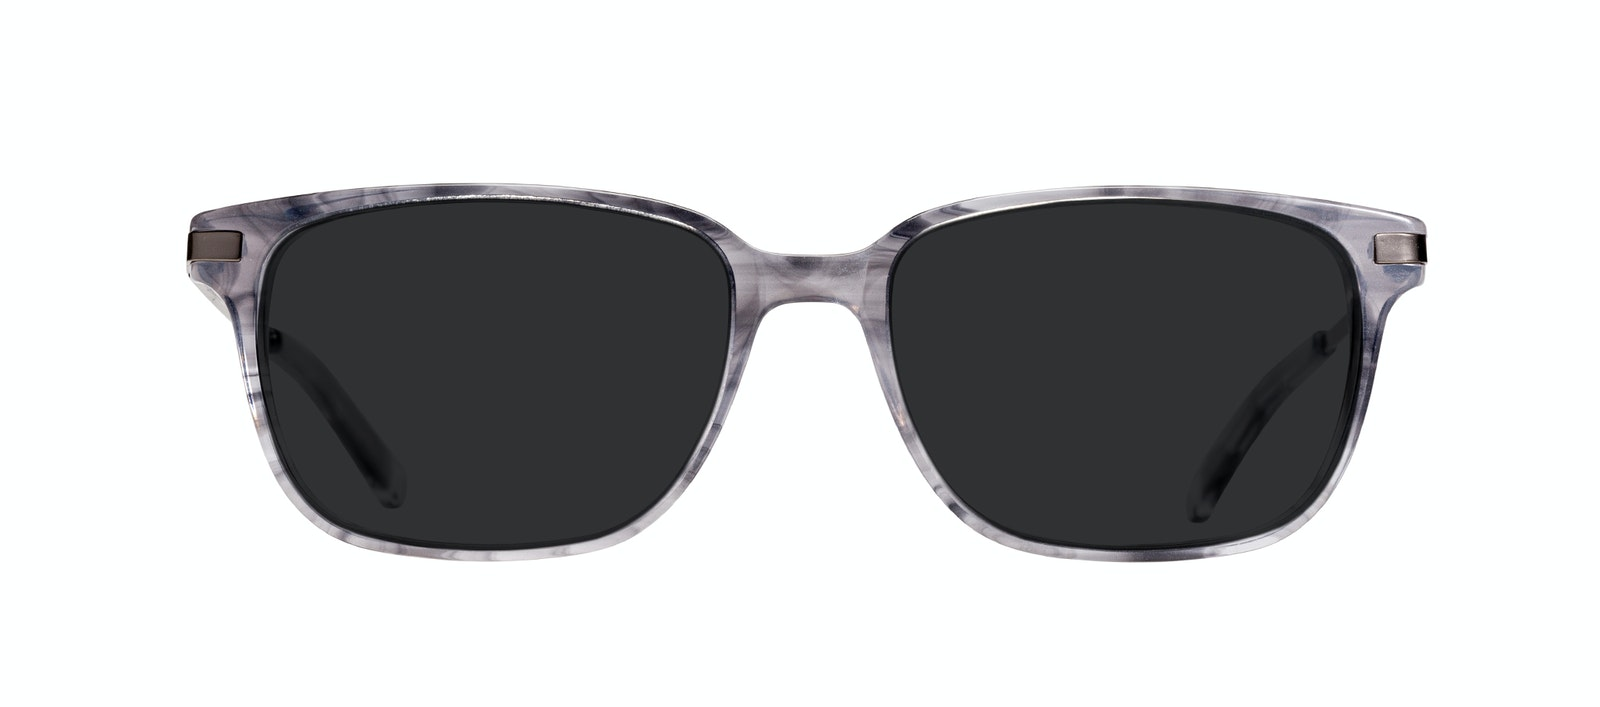 Affordable Fashion Glasses Rectangle Sunglasses Men Trade Smokey Grey Front